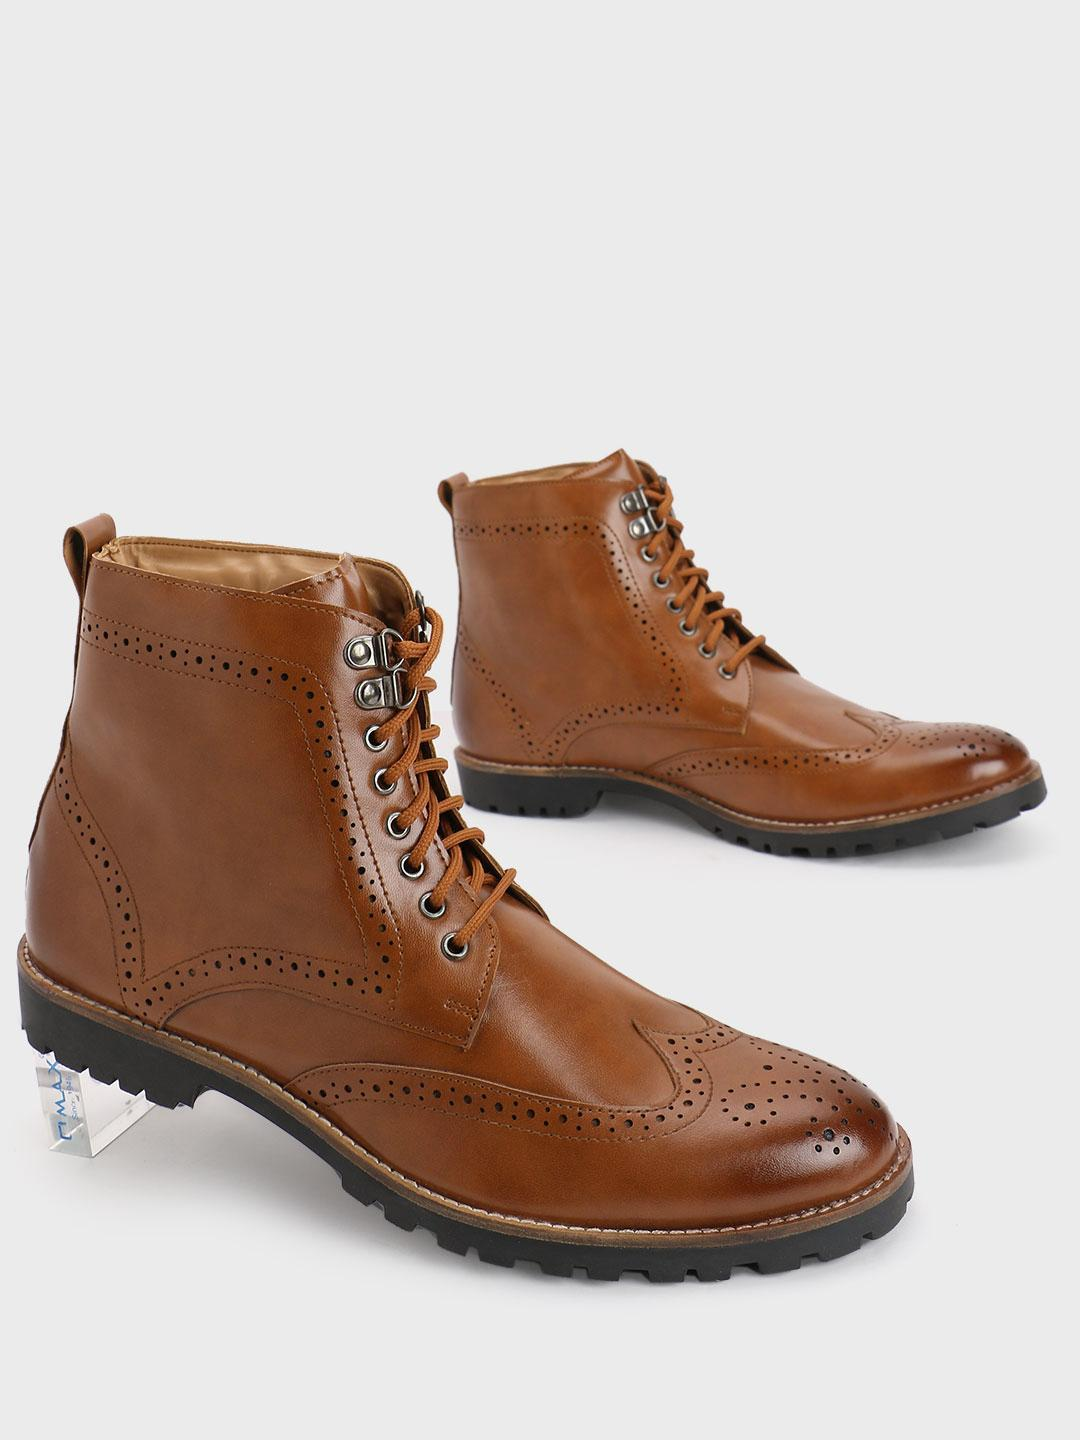 Bolt Of The Good Stuff Brown Brogue Mid Top Lace-Up Boots 1